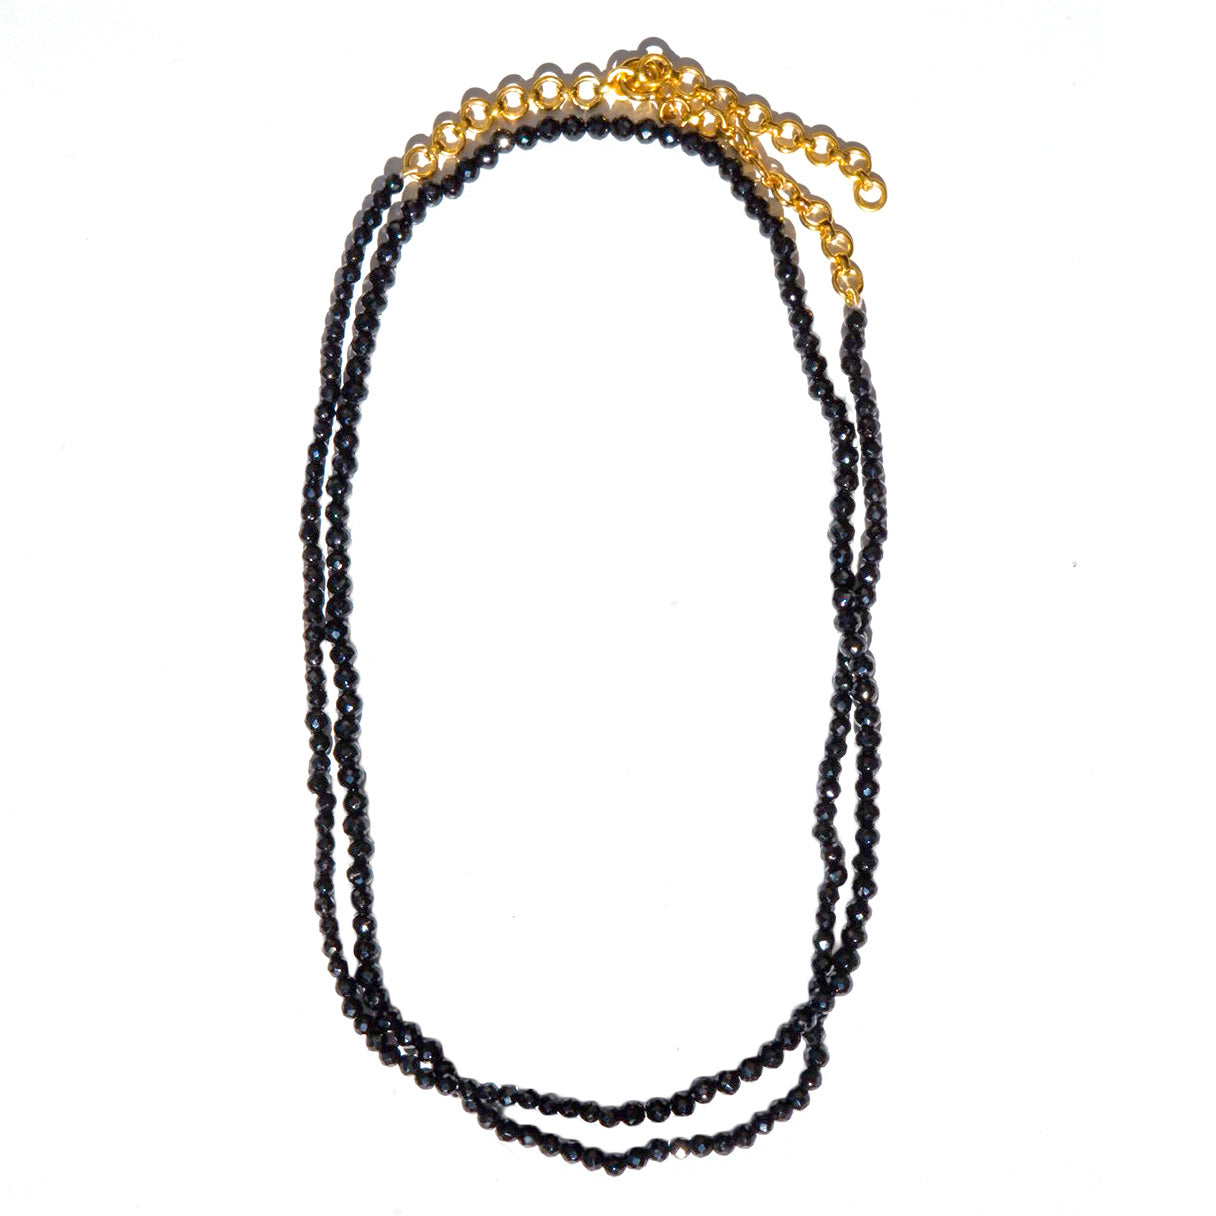 Black Spinel Chain